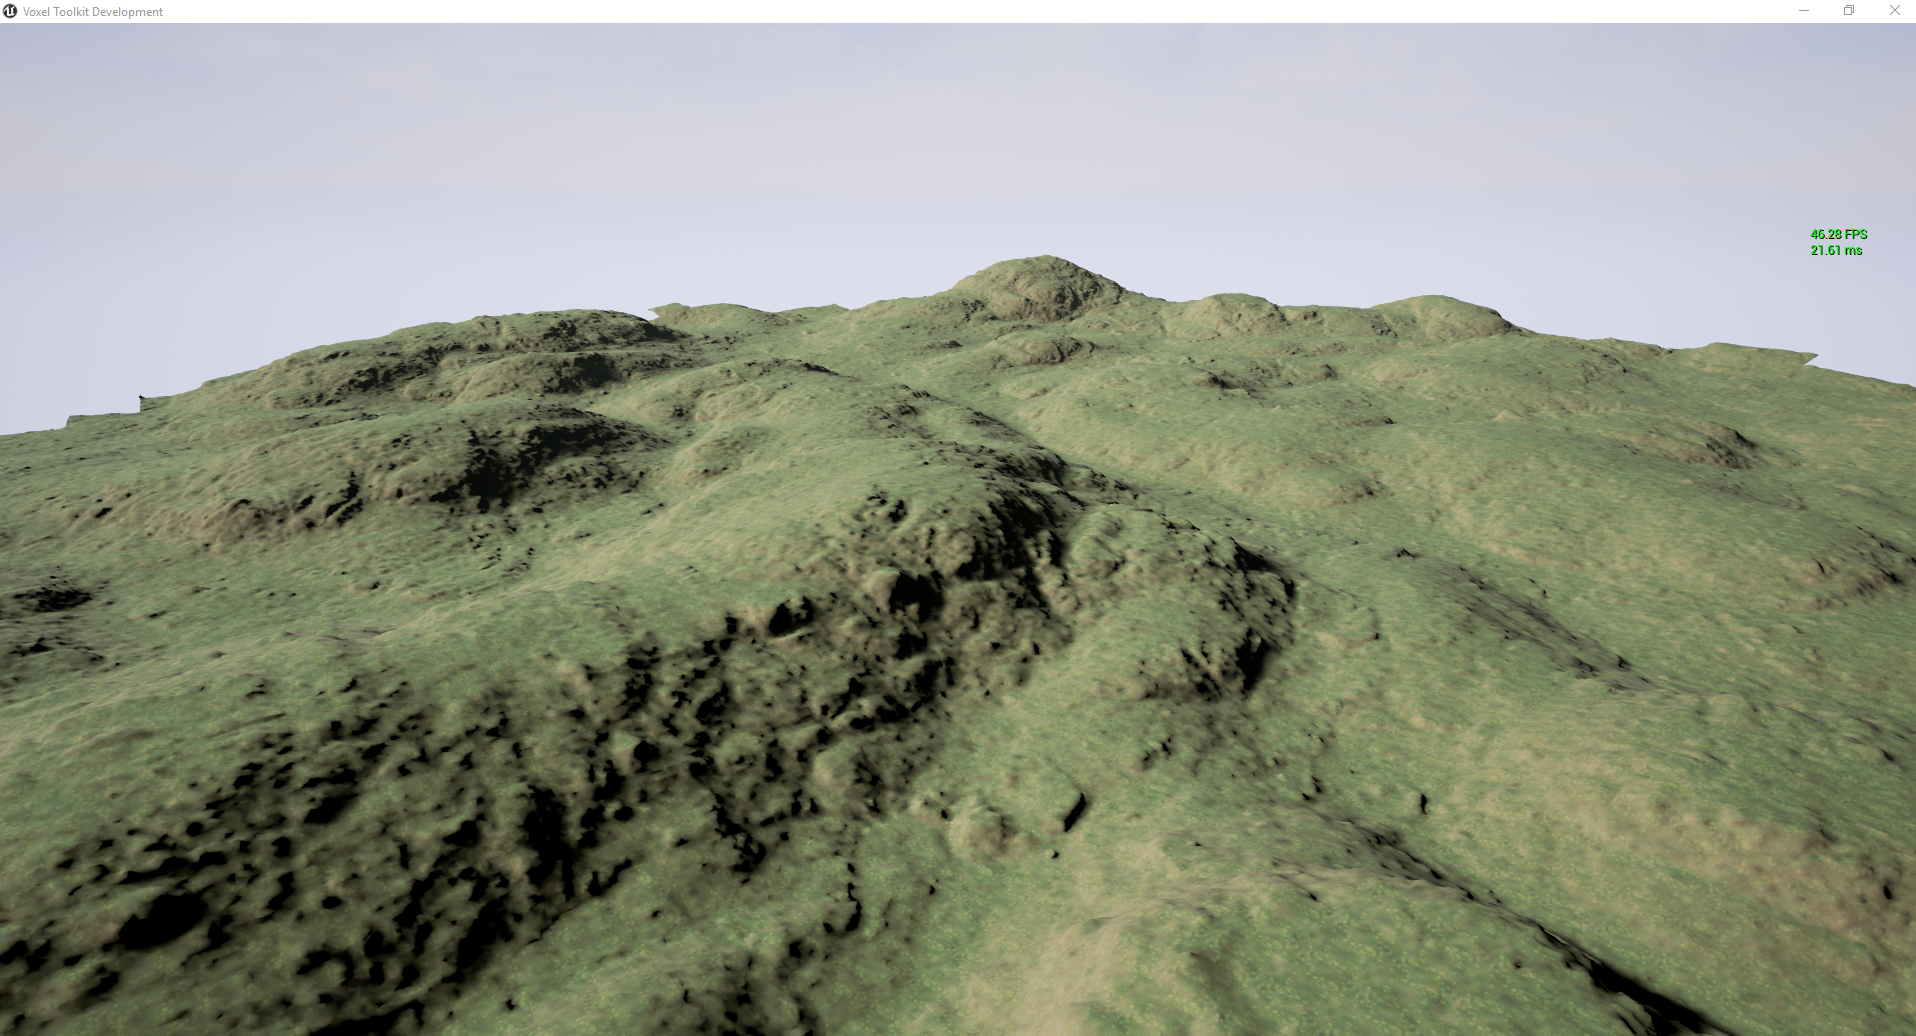 VoxelEngine - Low Rolling Hills